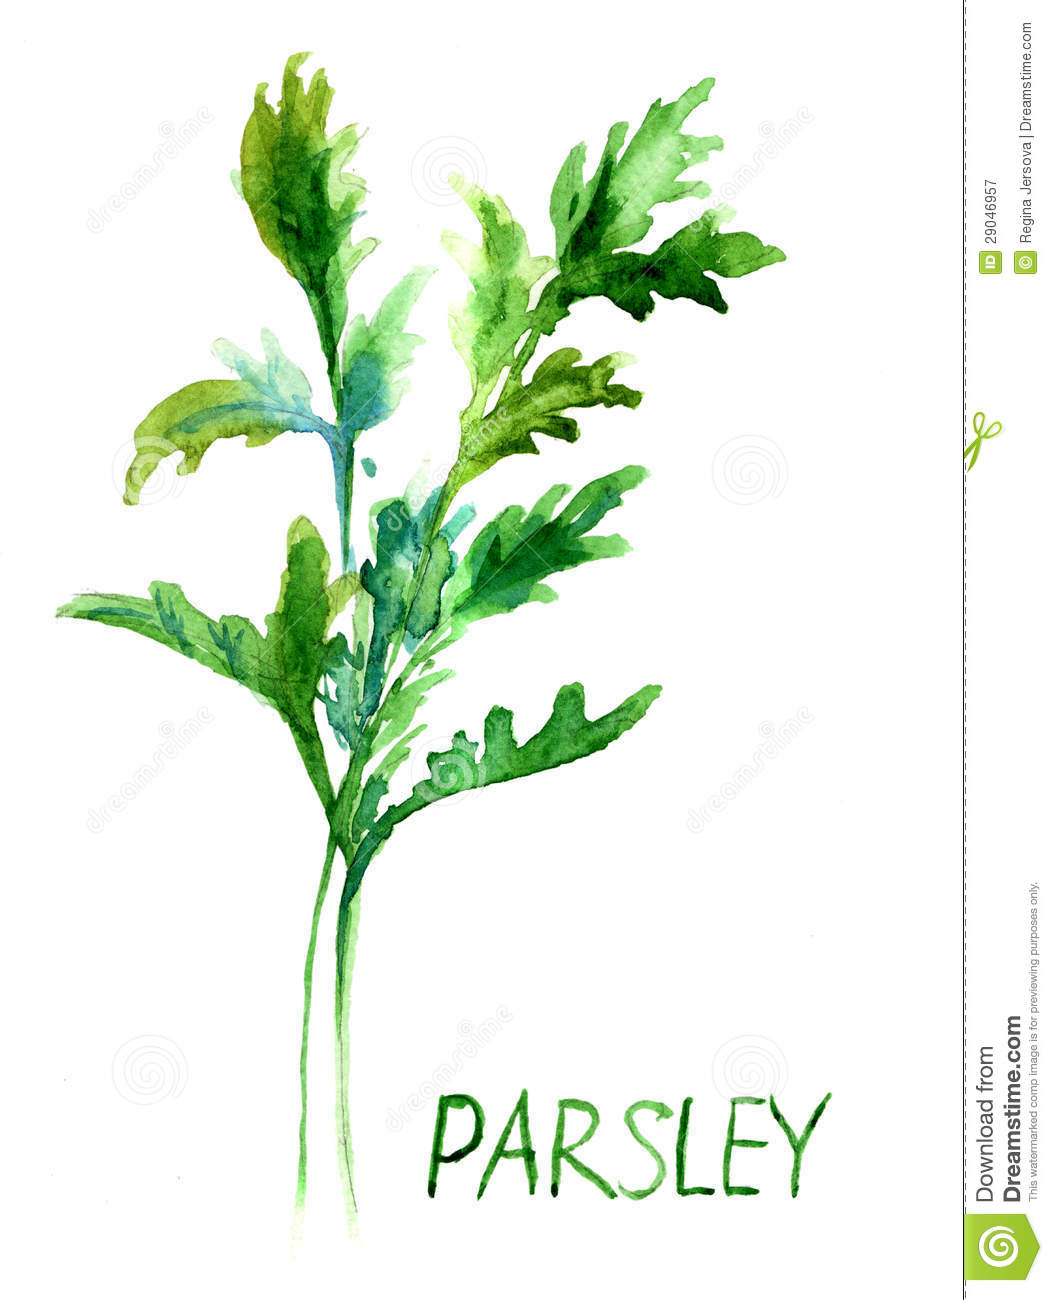 Parsley Illustration Parsley, Watercolor Il...